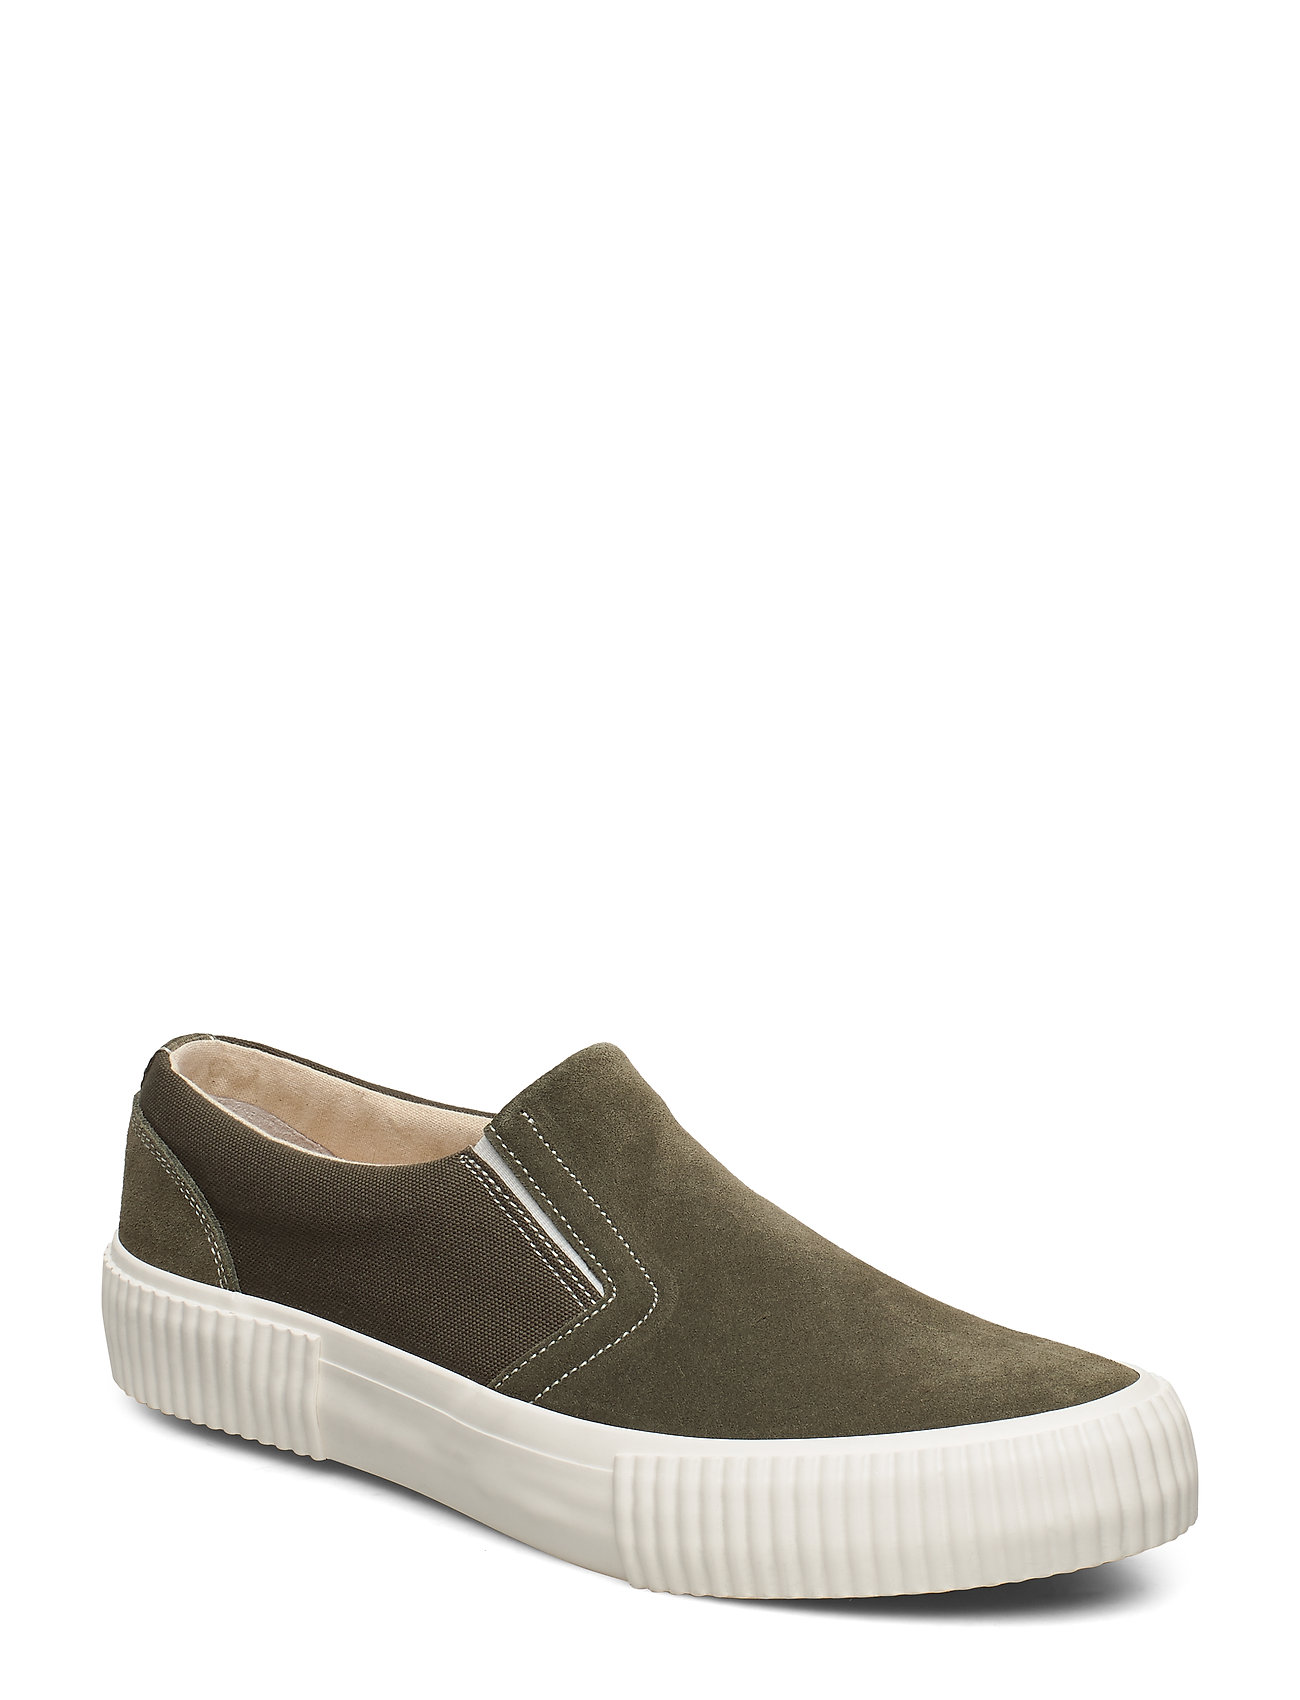 Image of Stb-Frisco S Low-top Sneakers Grøn Shoe The Bear (3356552571)